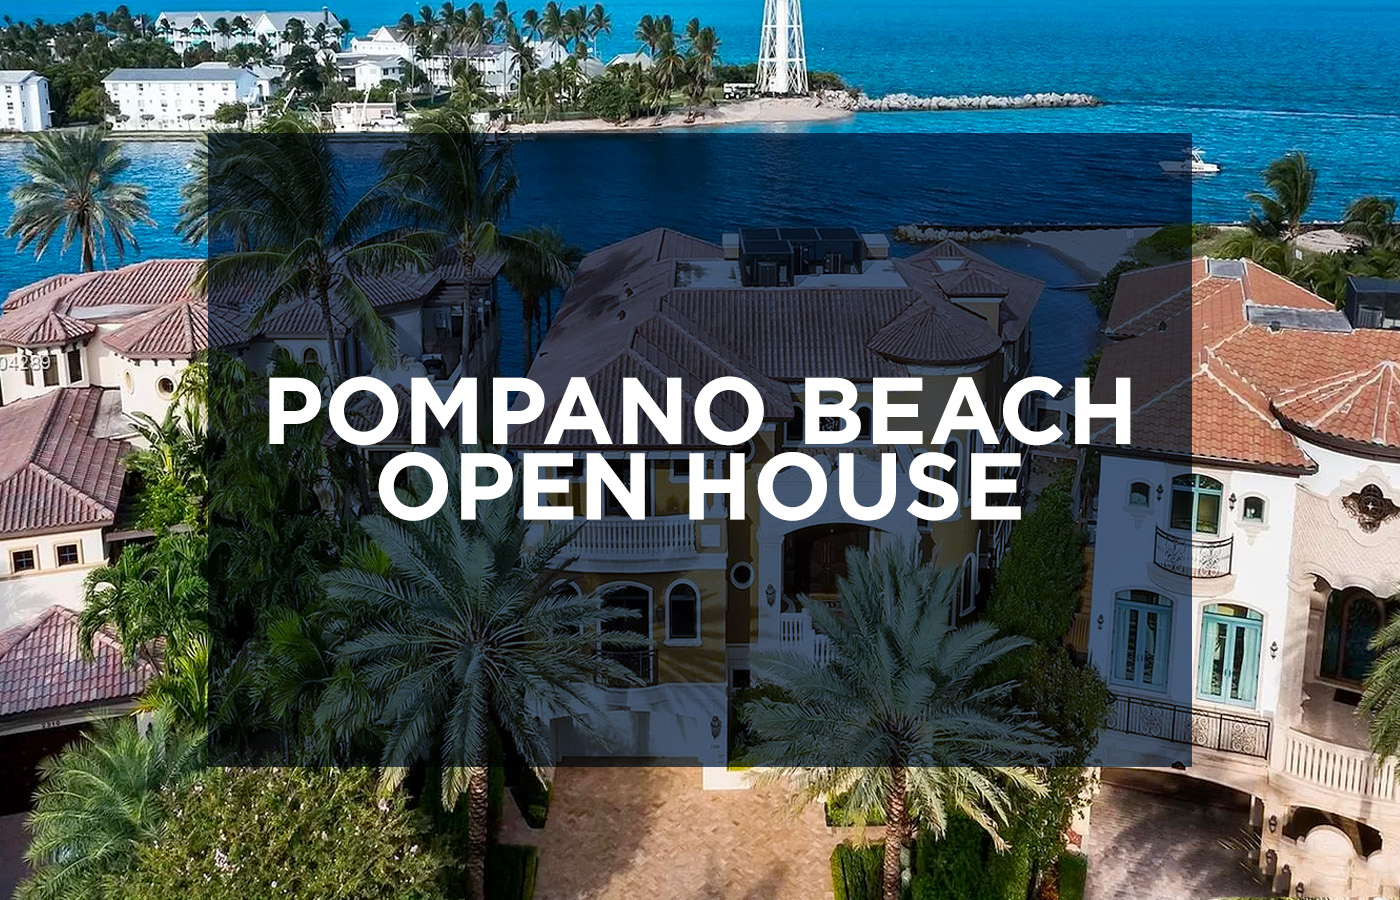 Pompano Beach Open House [Yachts For Sale]